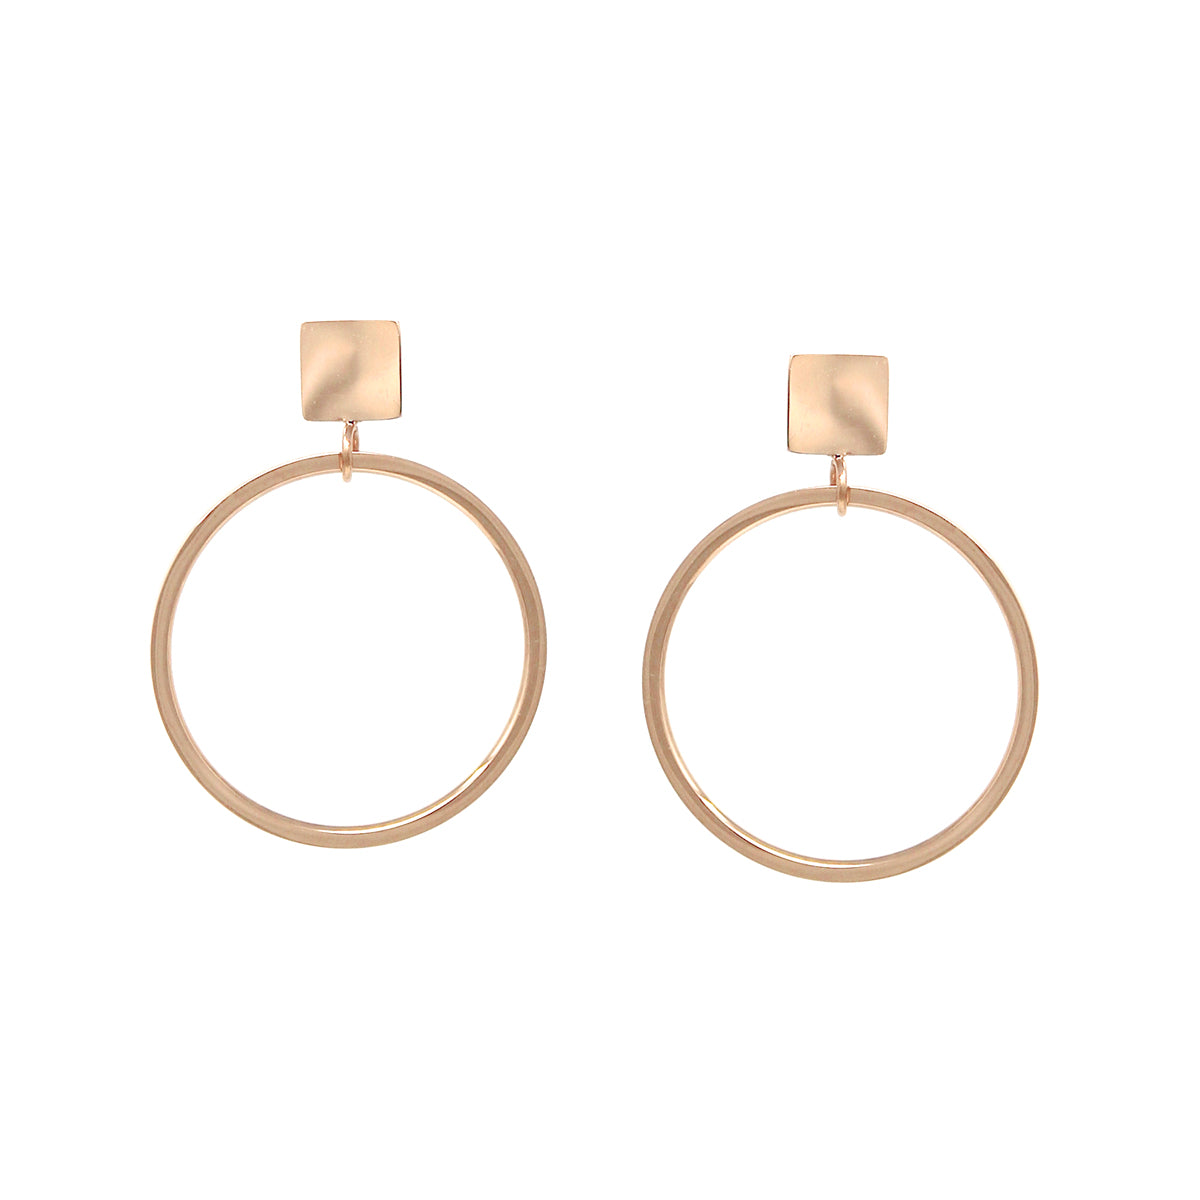 Stainless Steel Mini Square With Hoop Drop Earrings